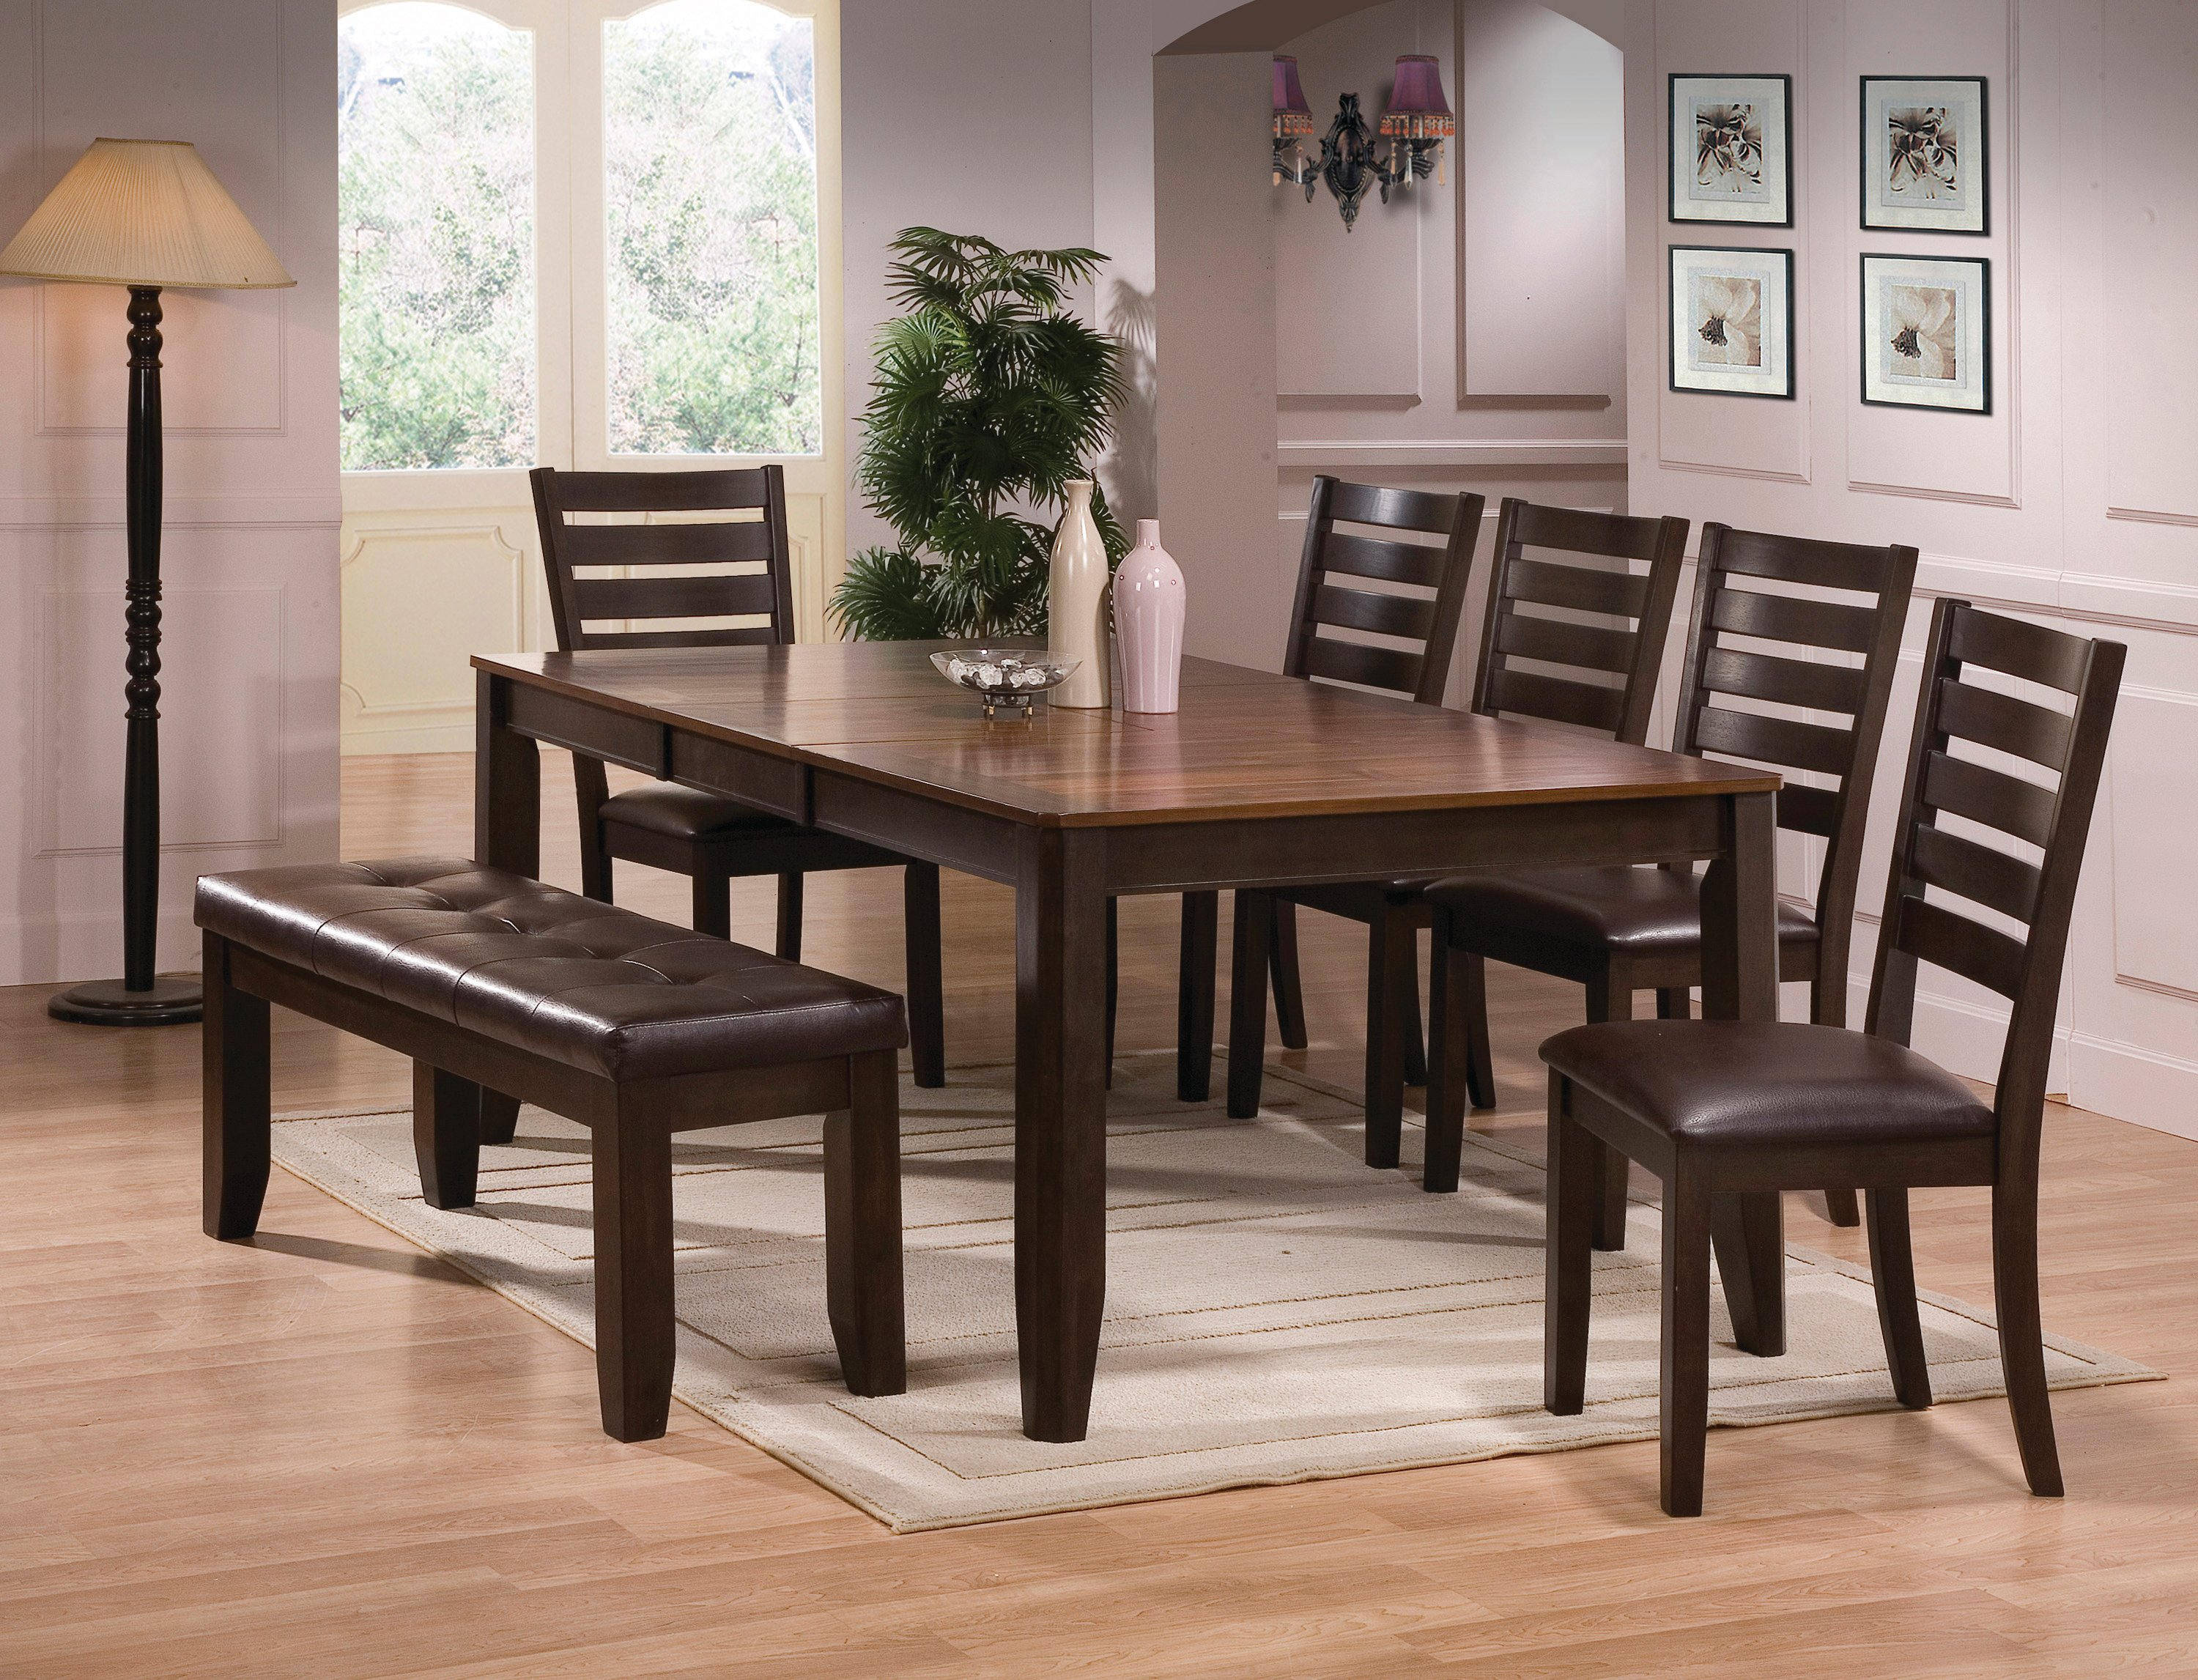 brown 6 piece dining set with bench elliott collection rc